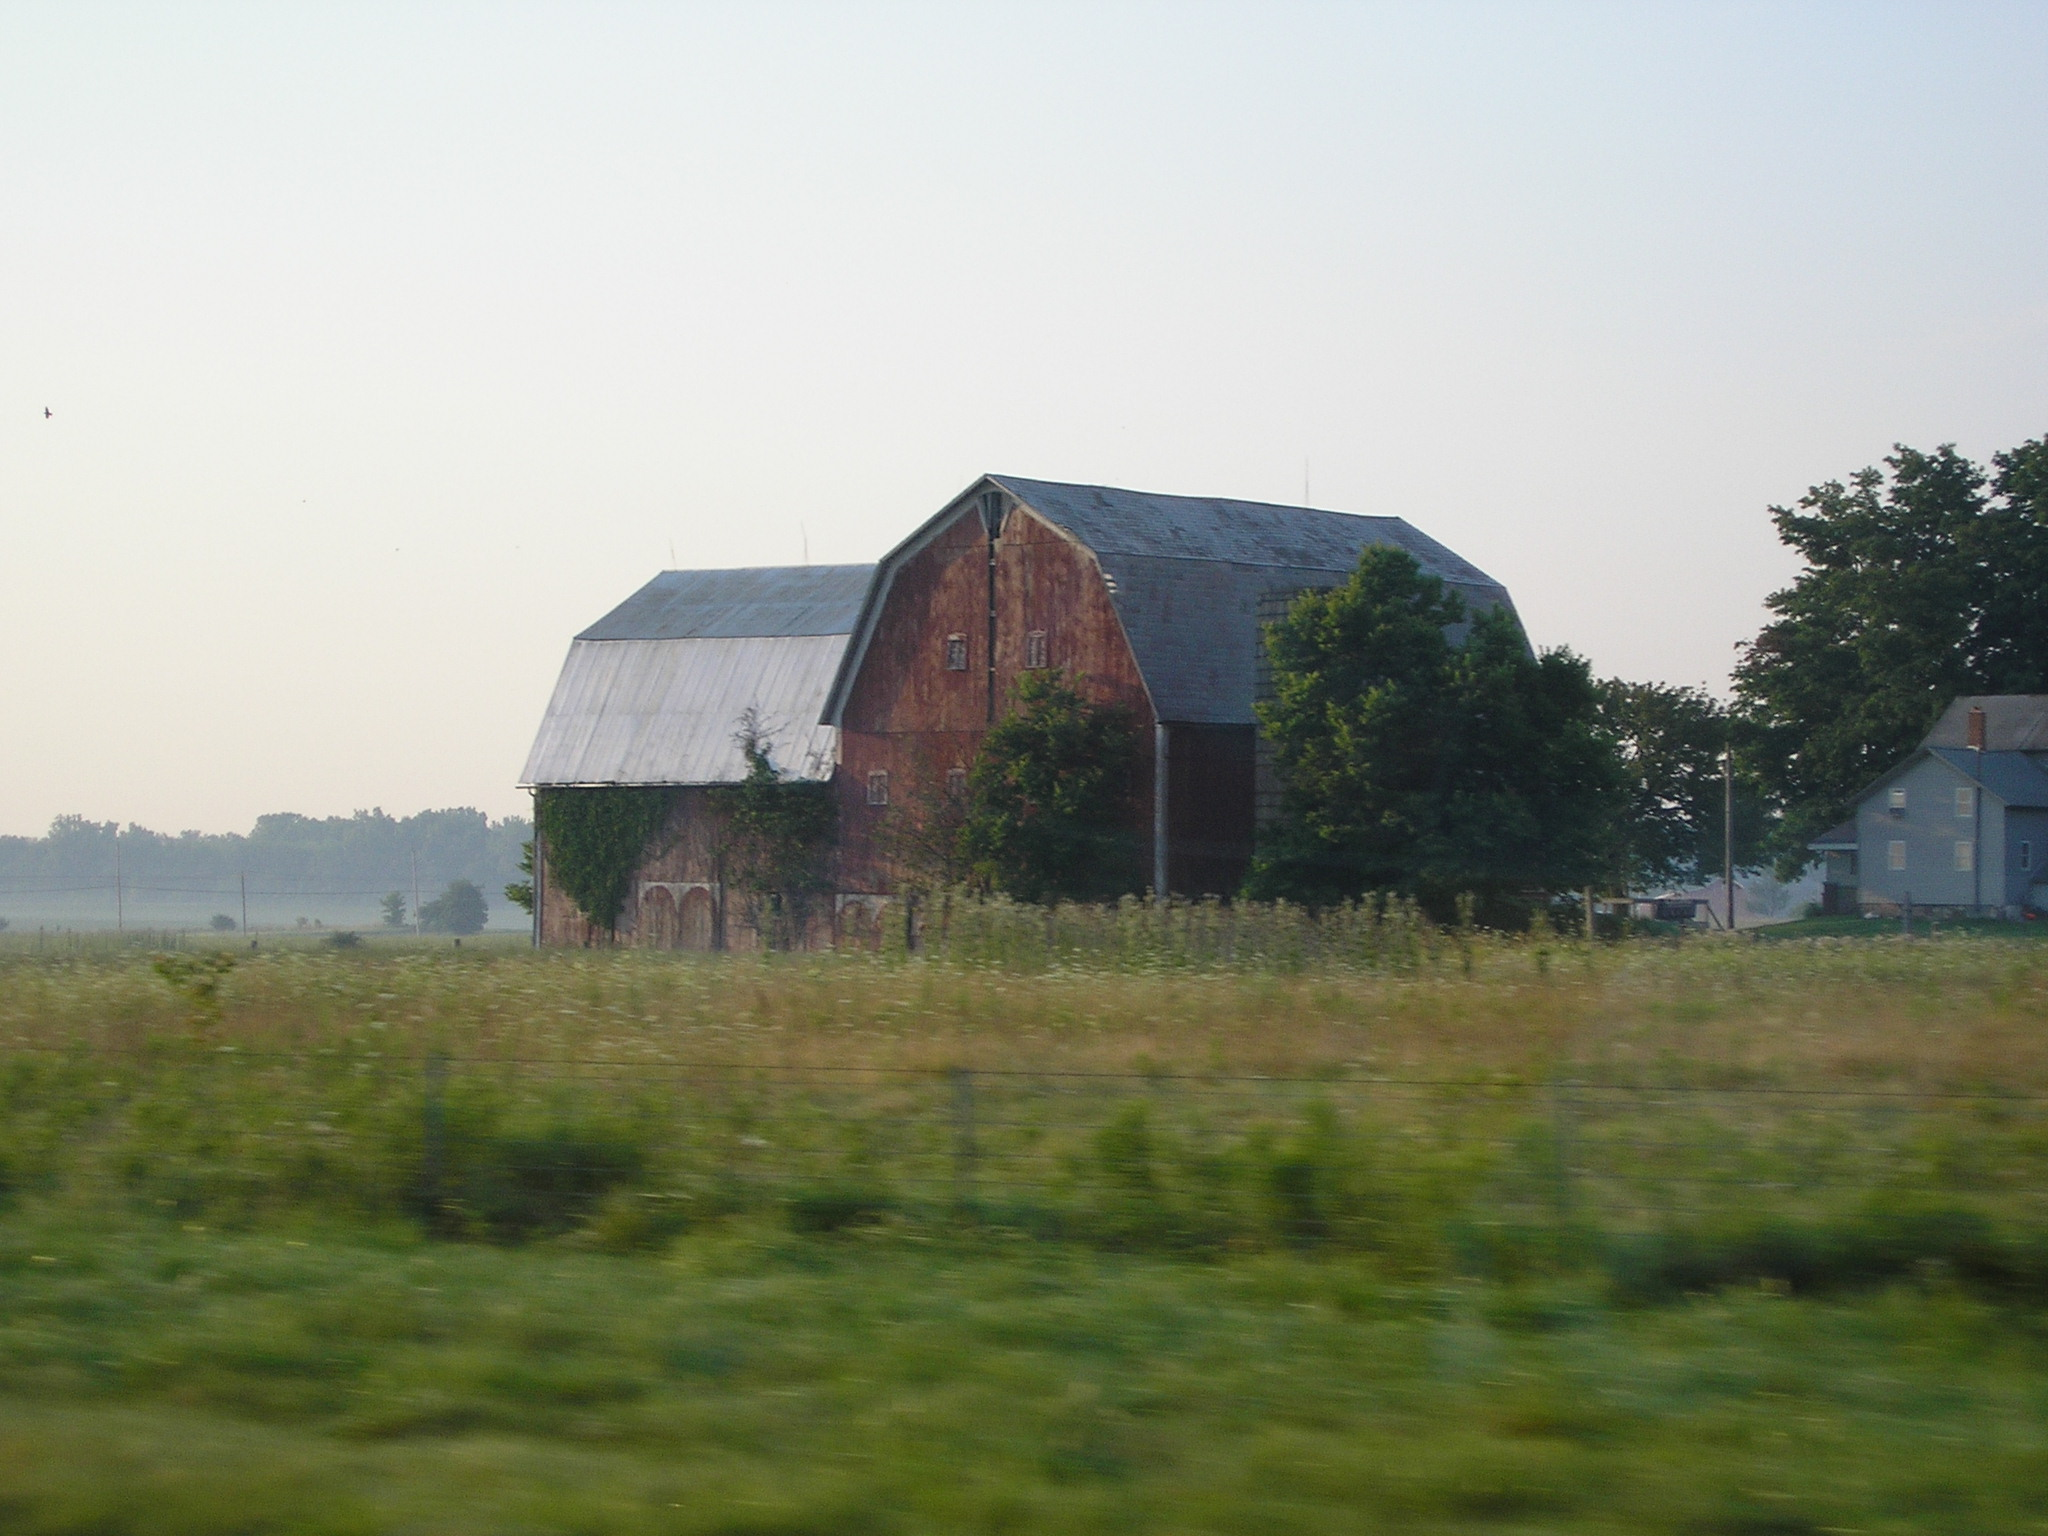 File:Indiana Farm.jpg - Wikimedia Commons